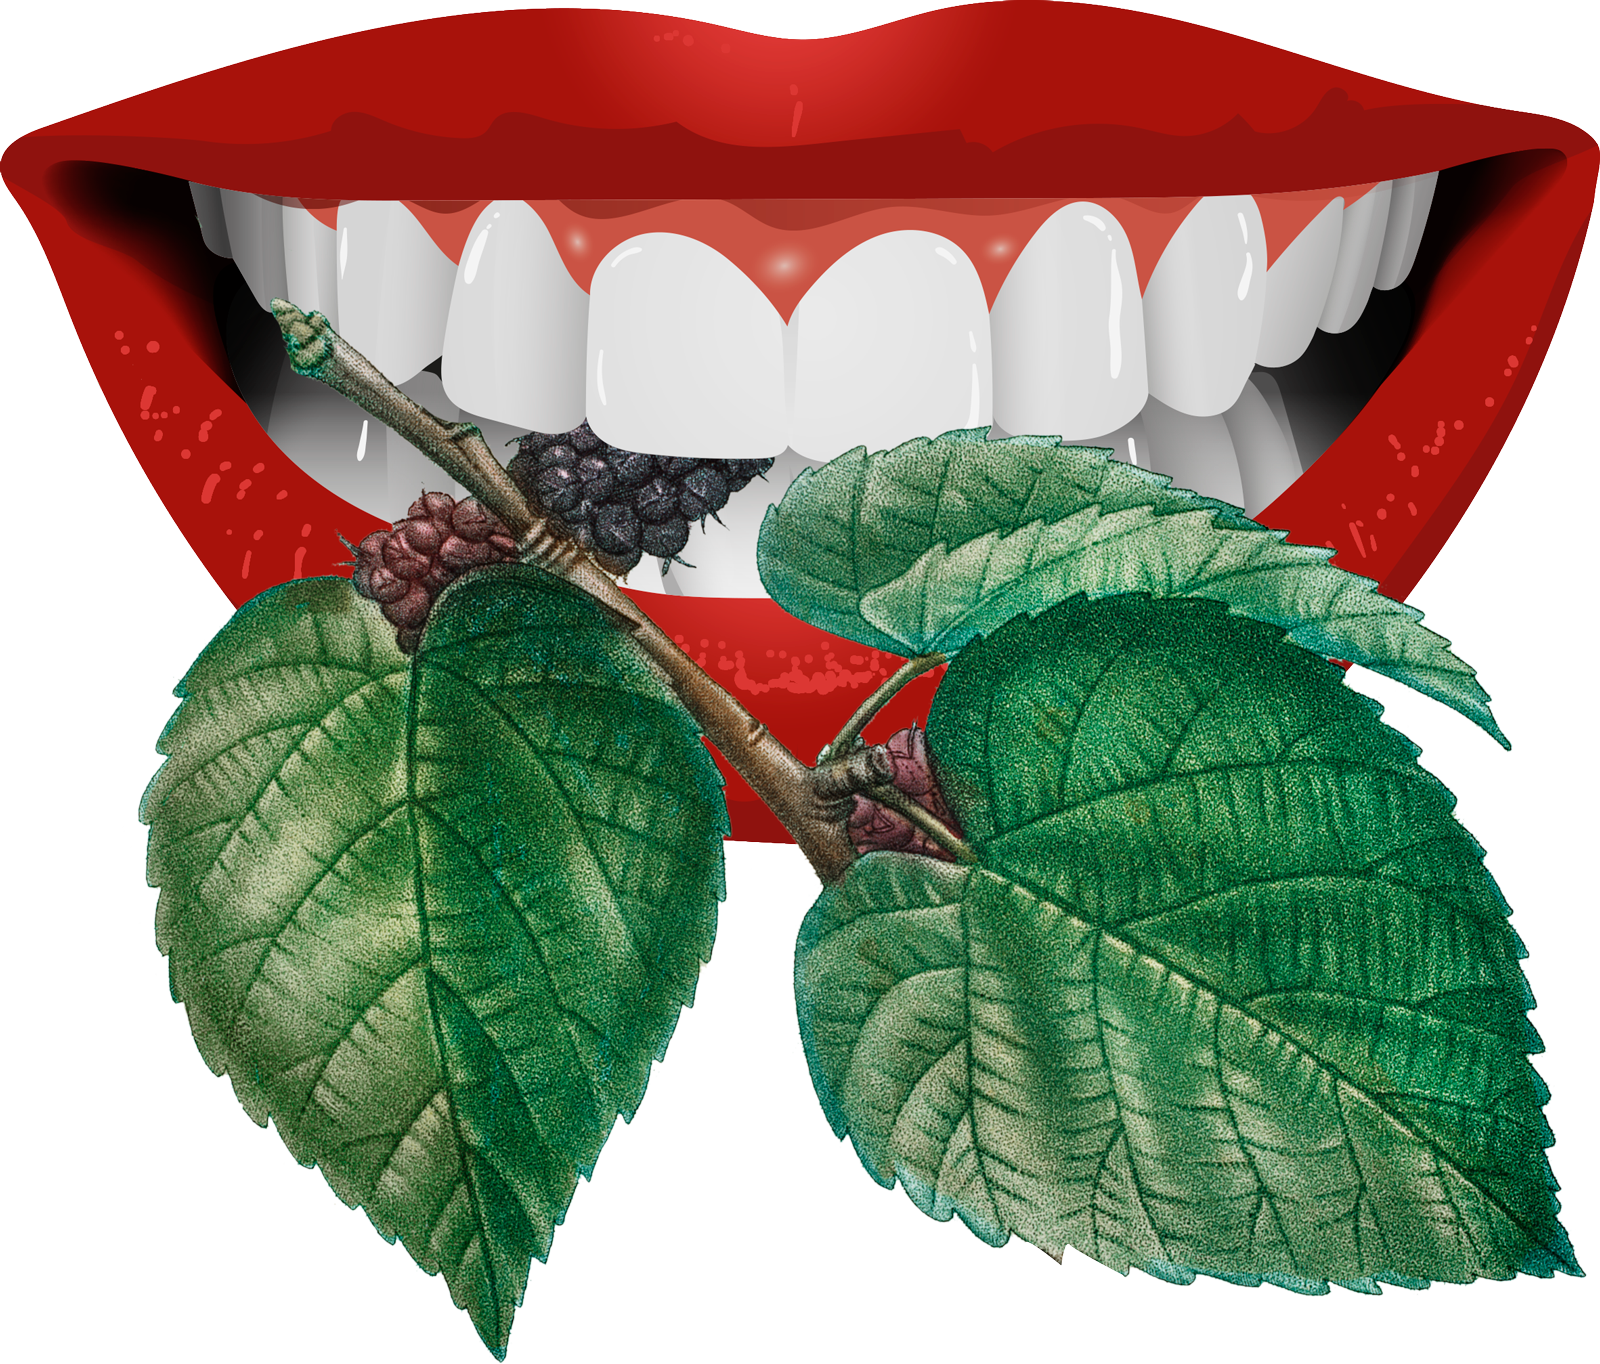 mulberries captured by perfect white teeth surround by painted lips